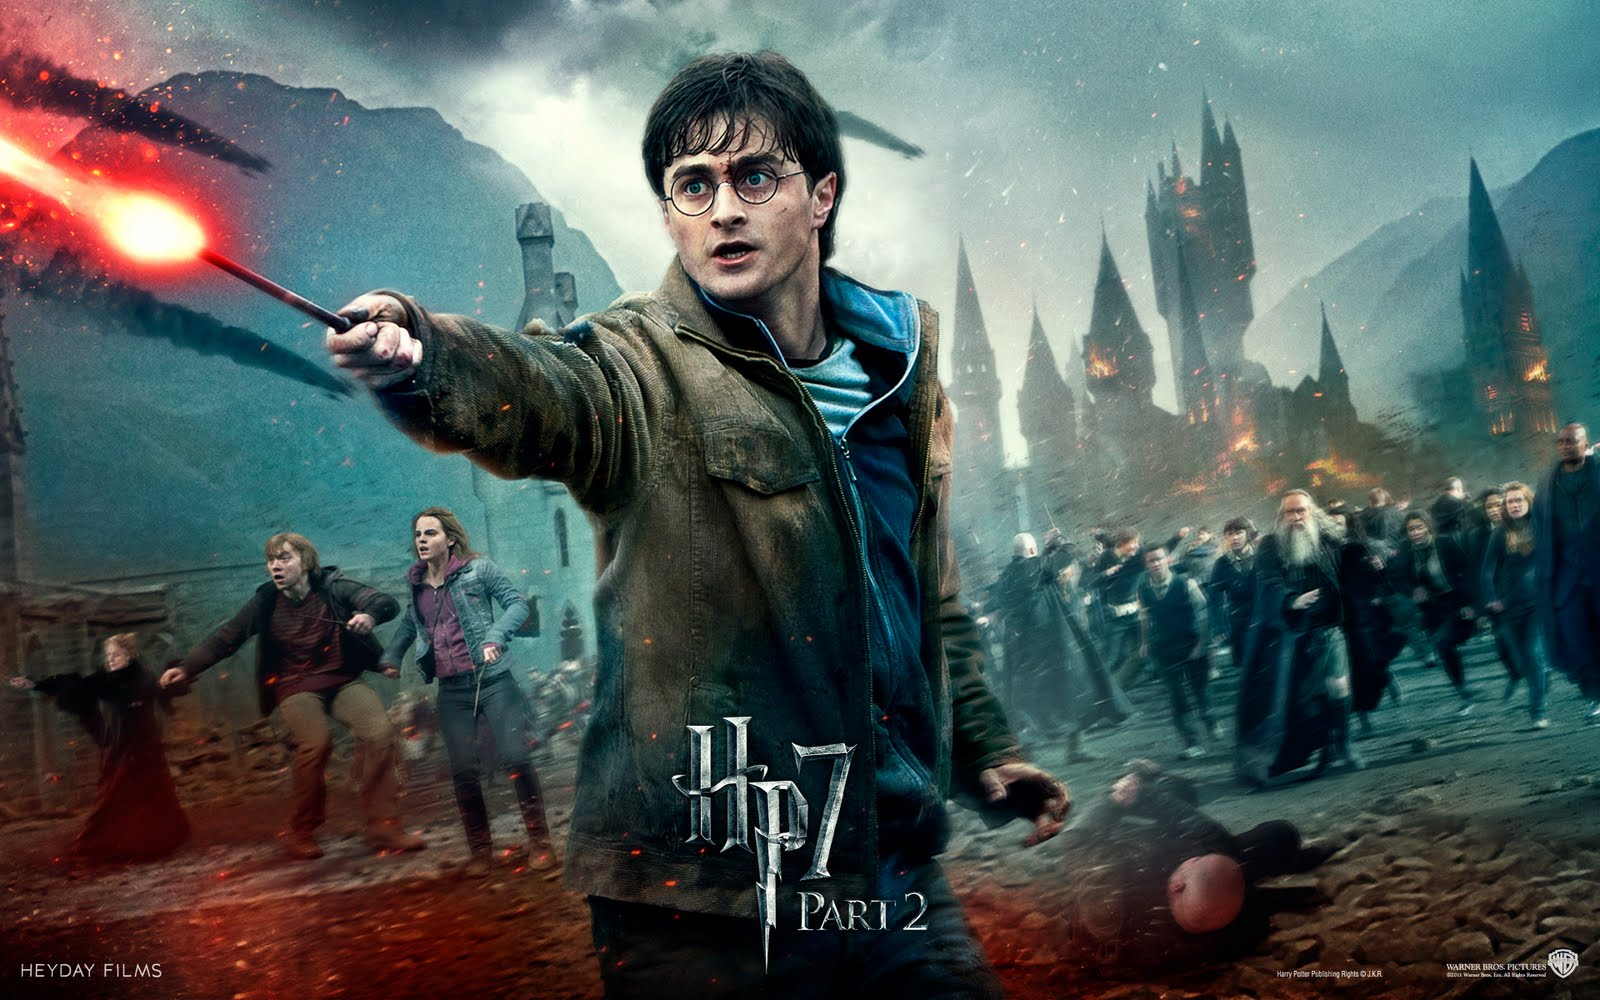 Harry Potter Deathly Hallows Part 2 Wallpaper